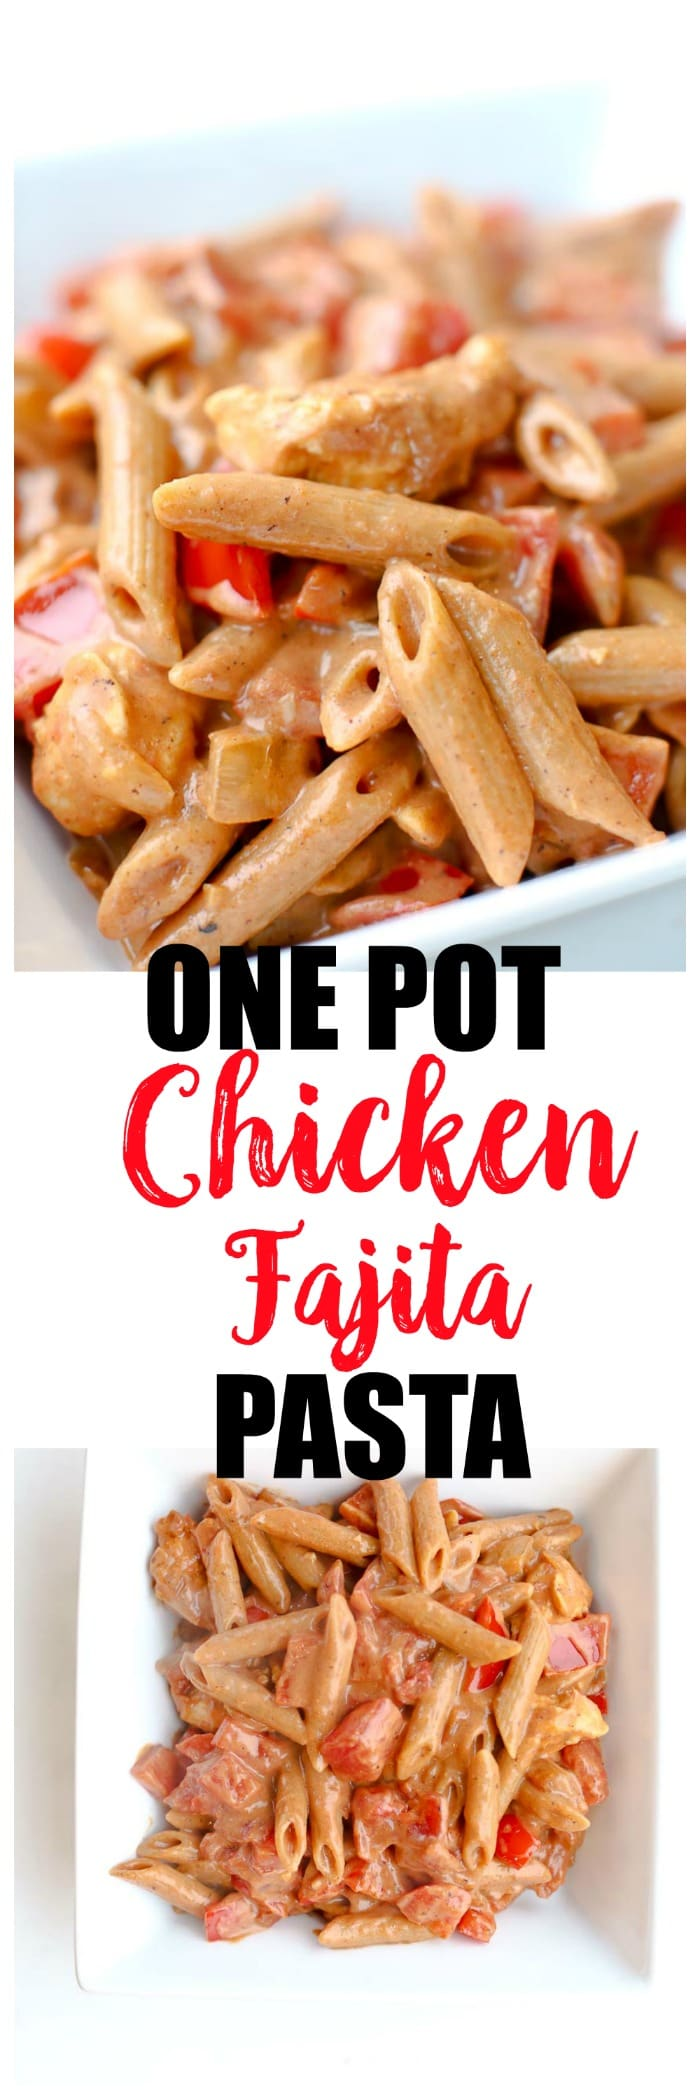 Chicken Fajita Pasta Recipe. Easy healthy dinner. Dairy-free, adaptations for gluten-free, Paleo, Whole30, and picky eaters.